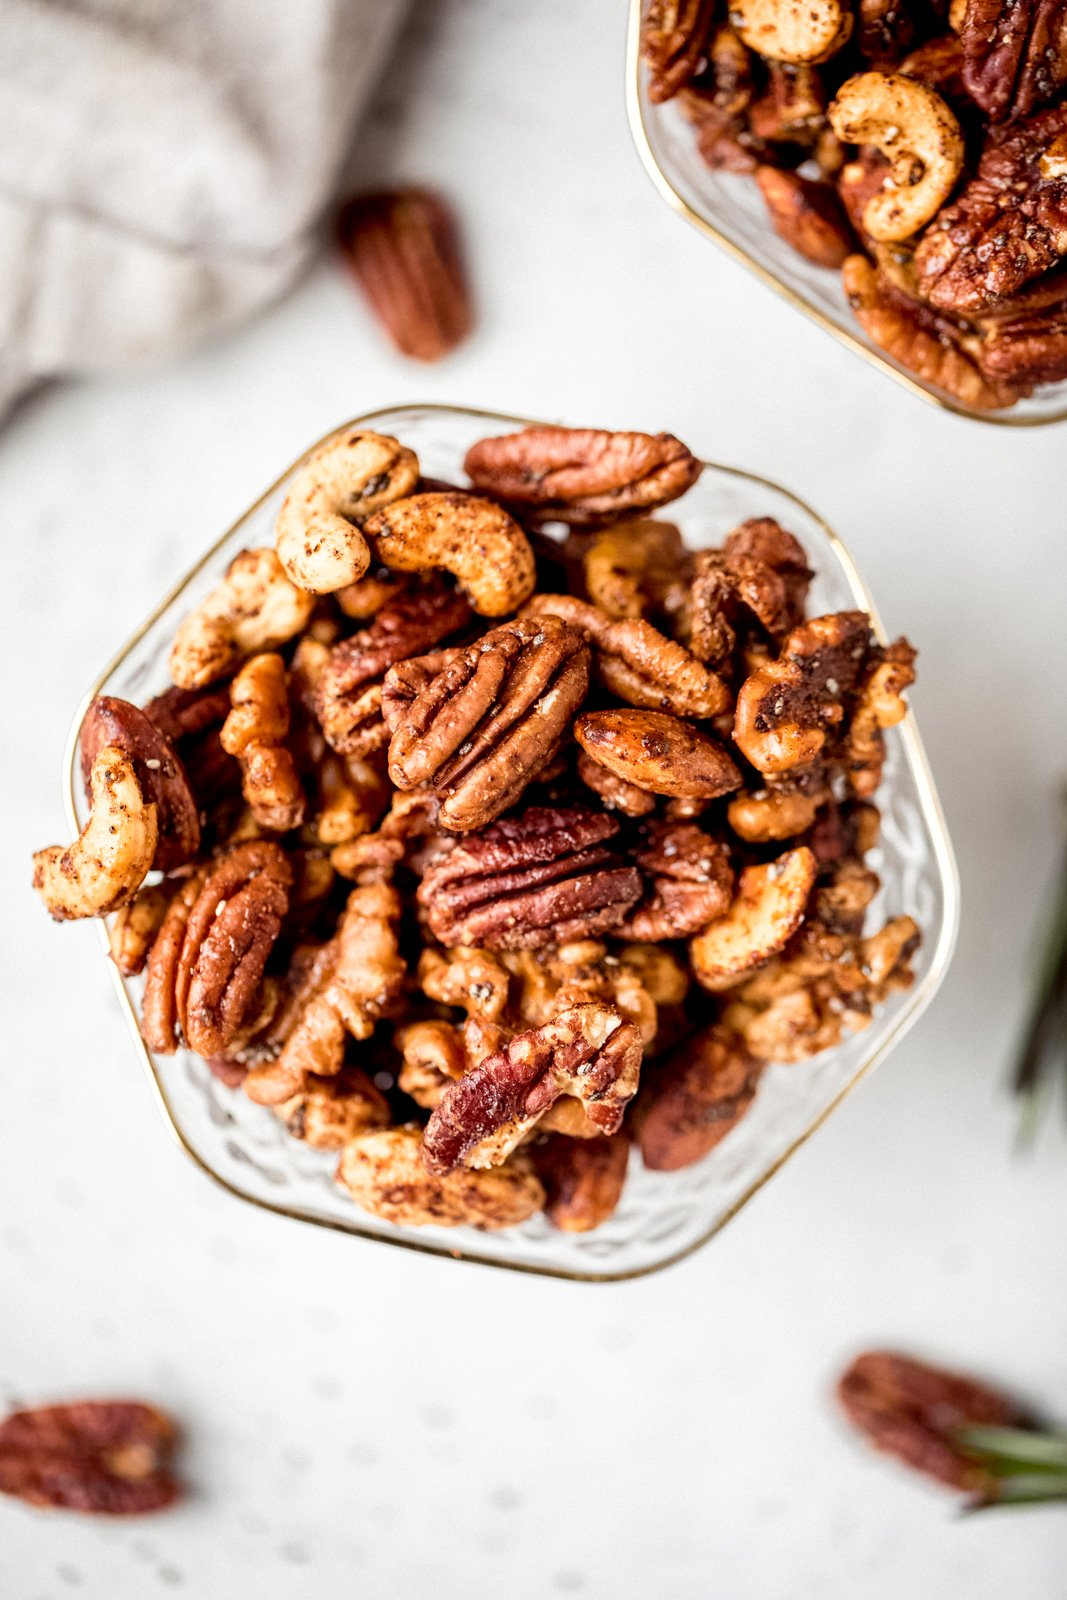 sweet and spicy nuts in a glass bowl